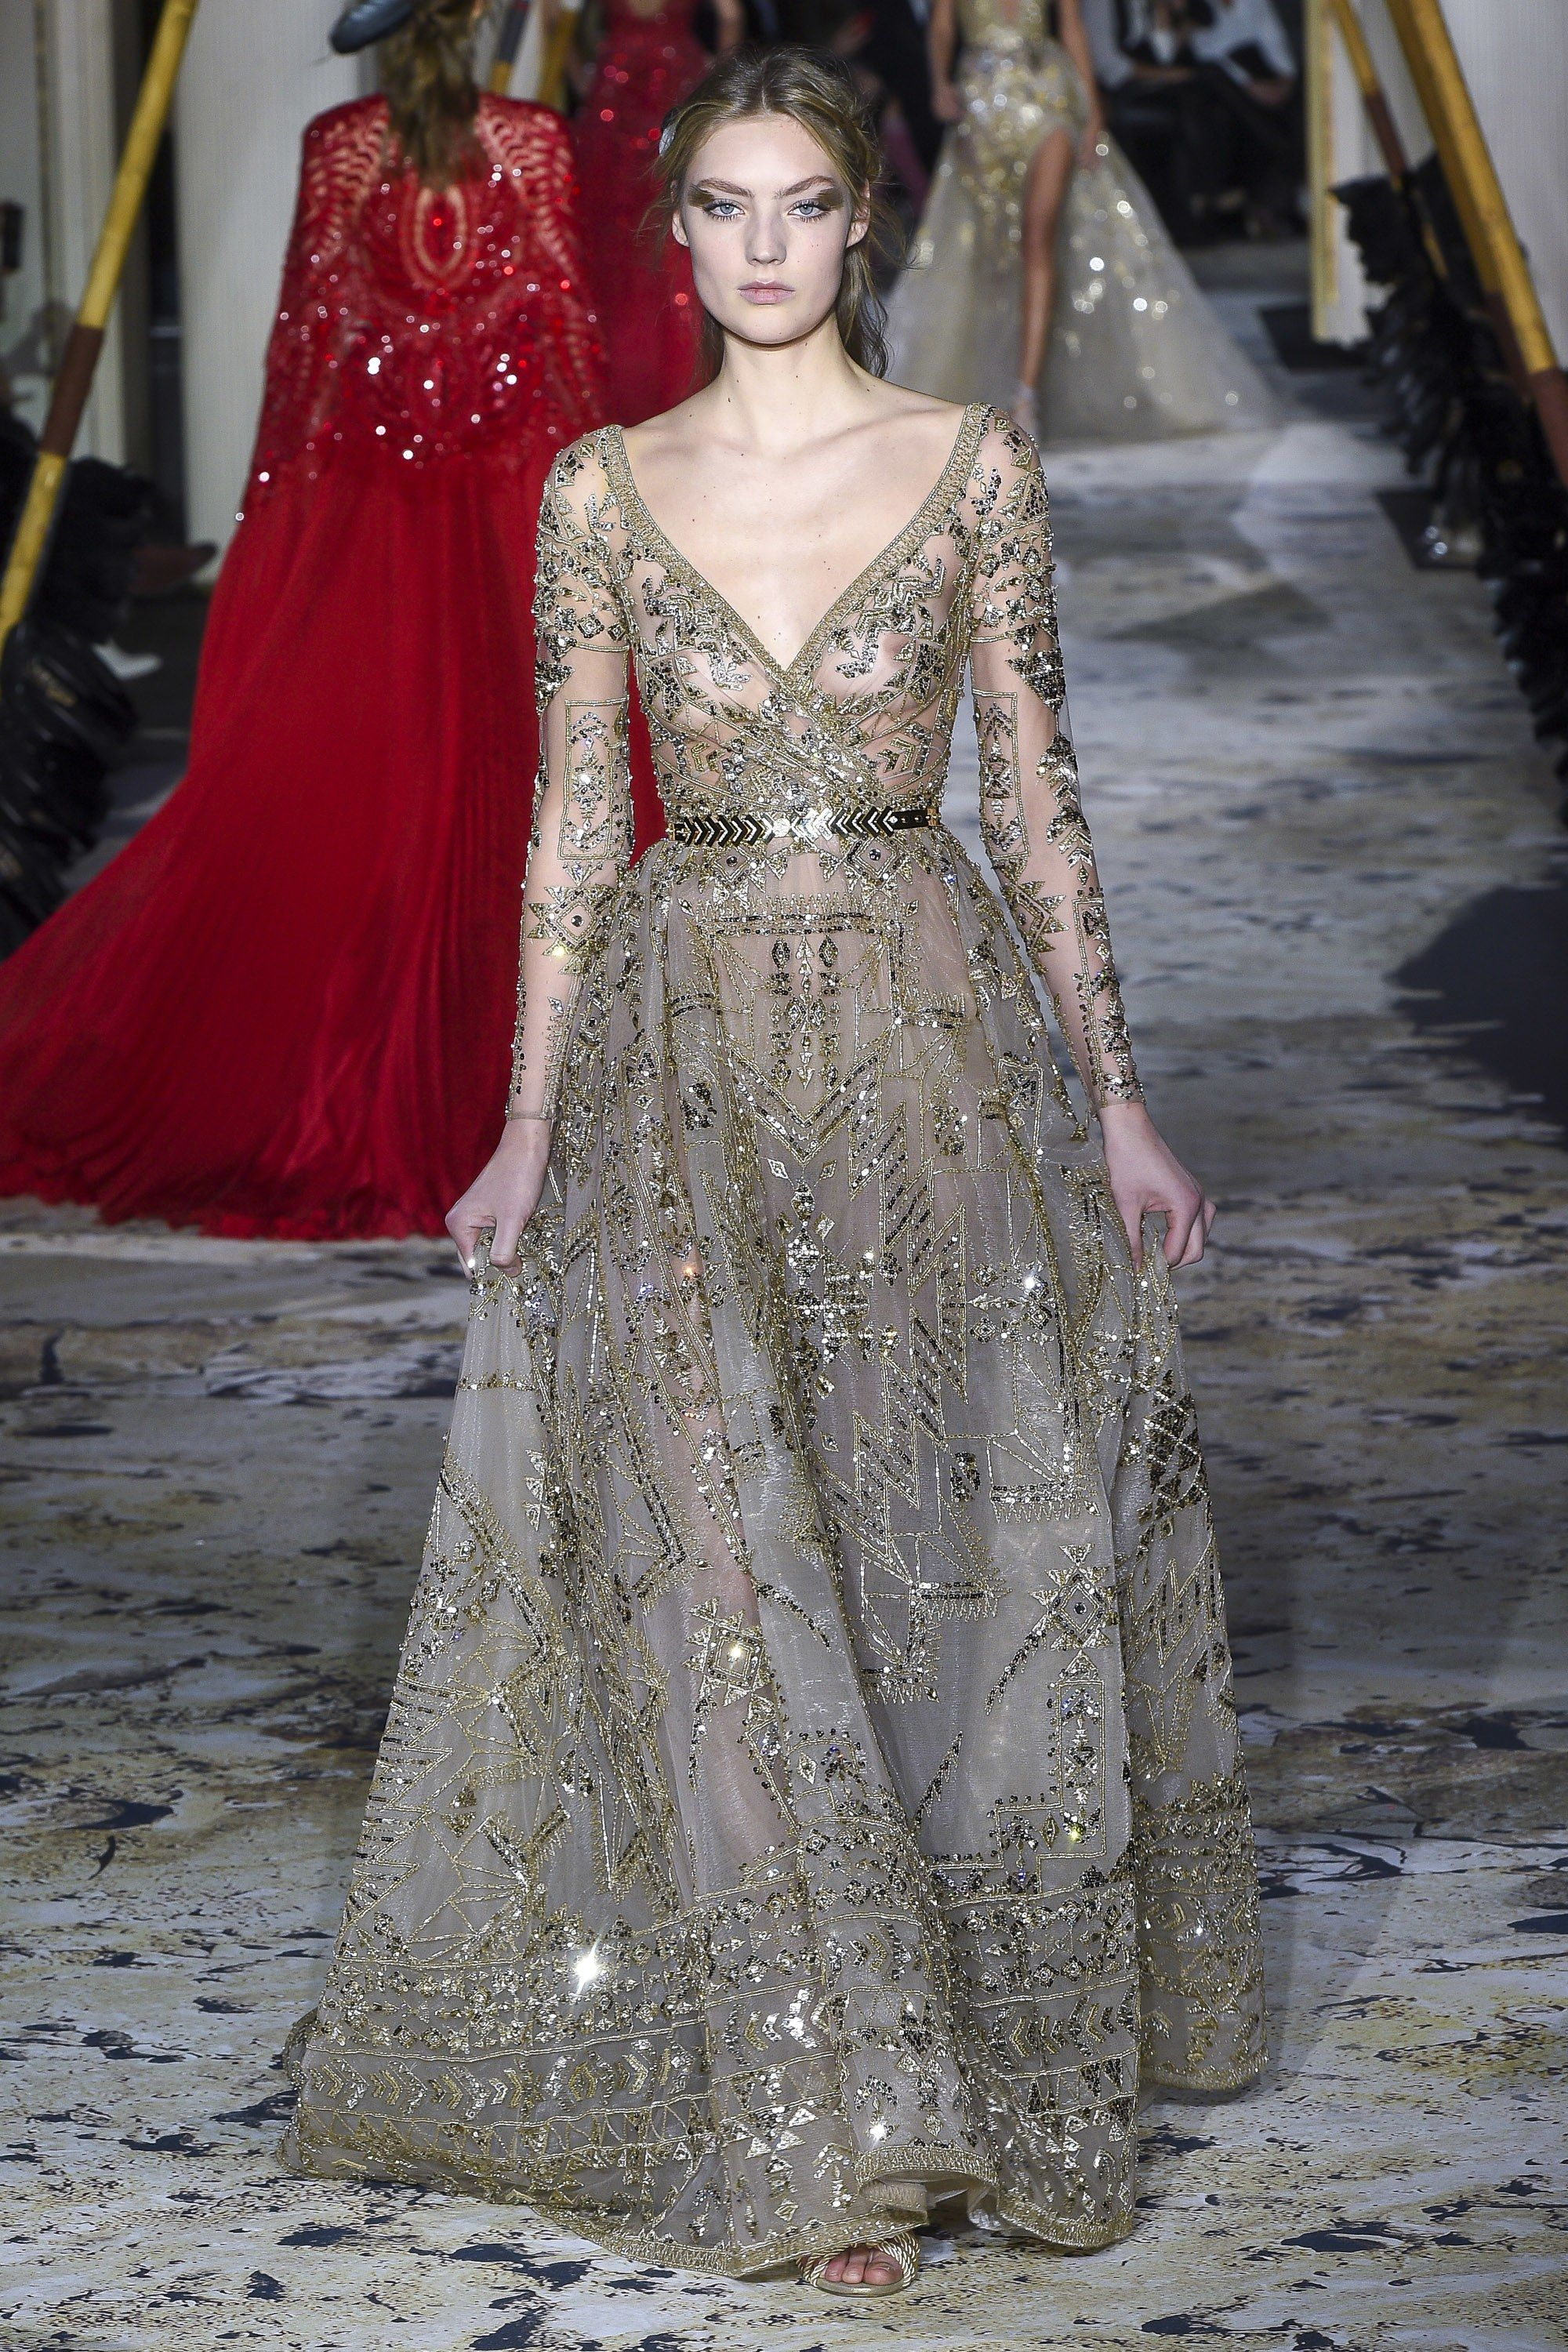 e33e4923ef1 Zuhair Murad Spring 2018 Couture Collection - Vogue